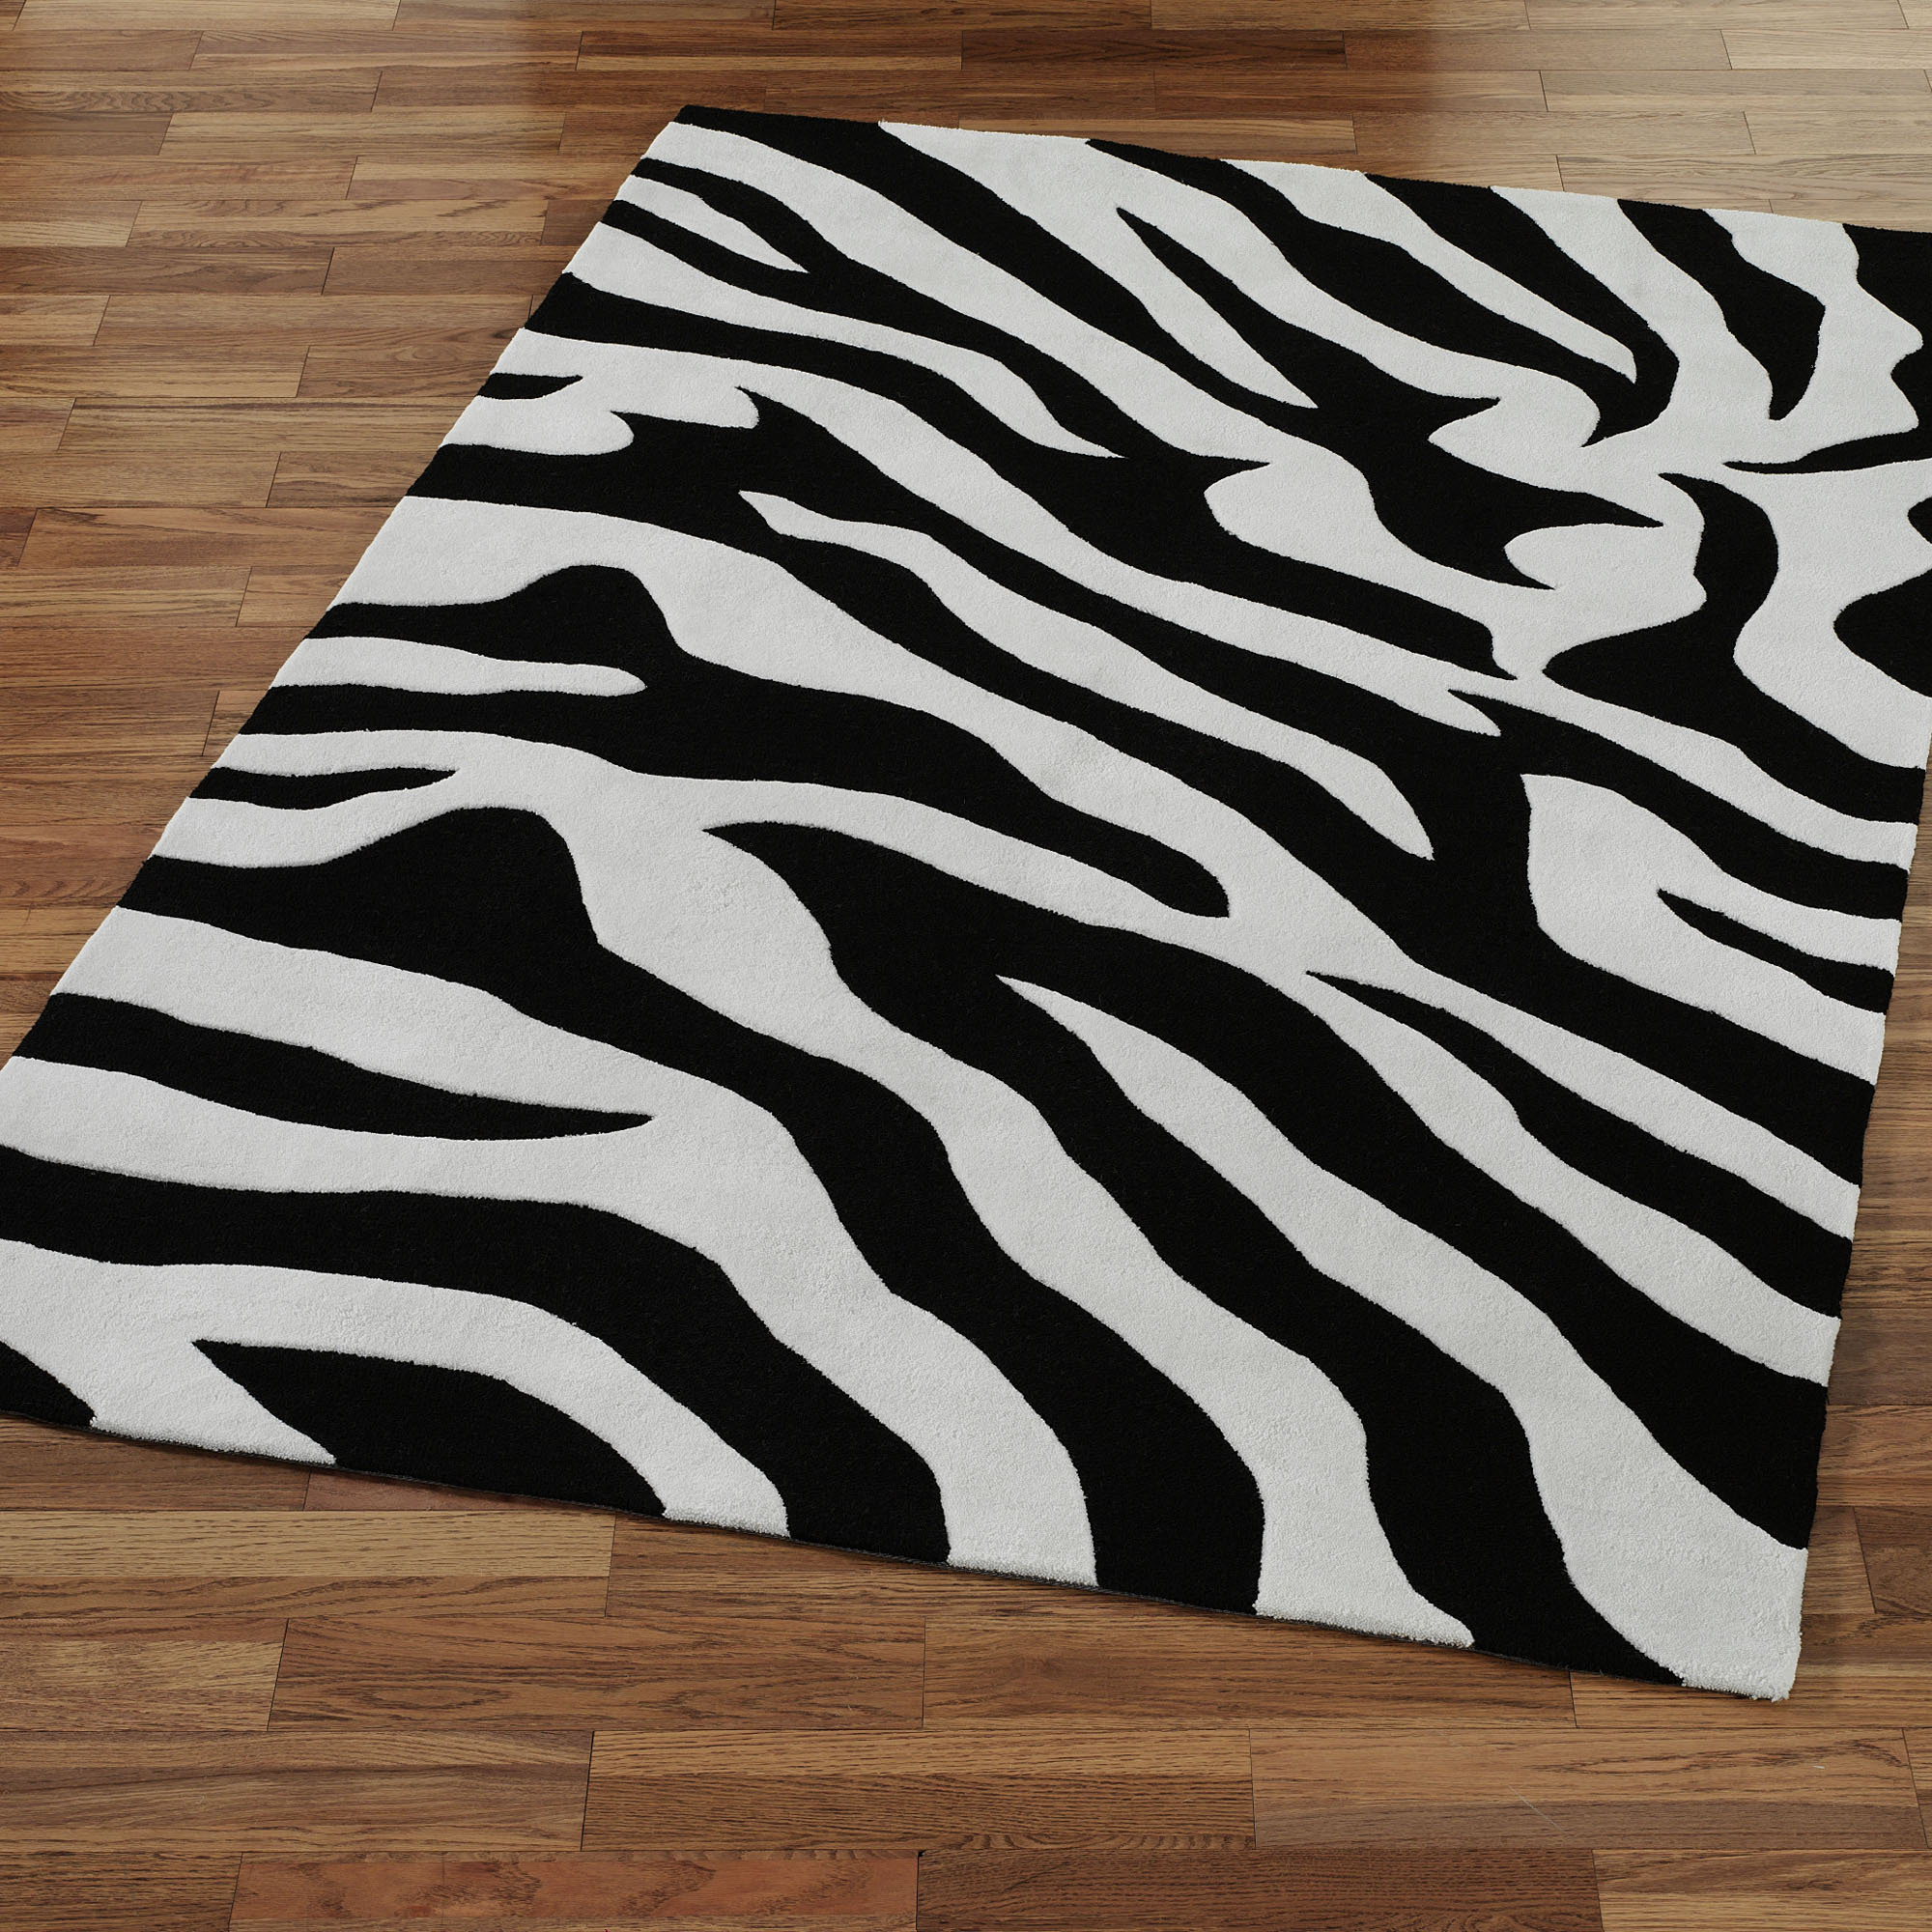 buy zebra rugs in dubai abu dhabi across uae